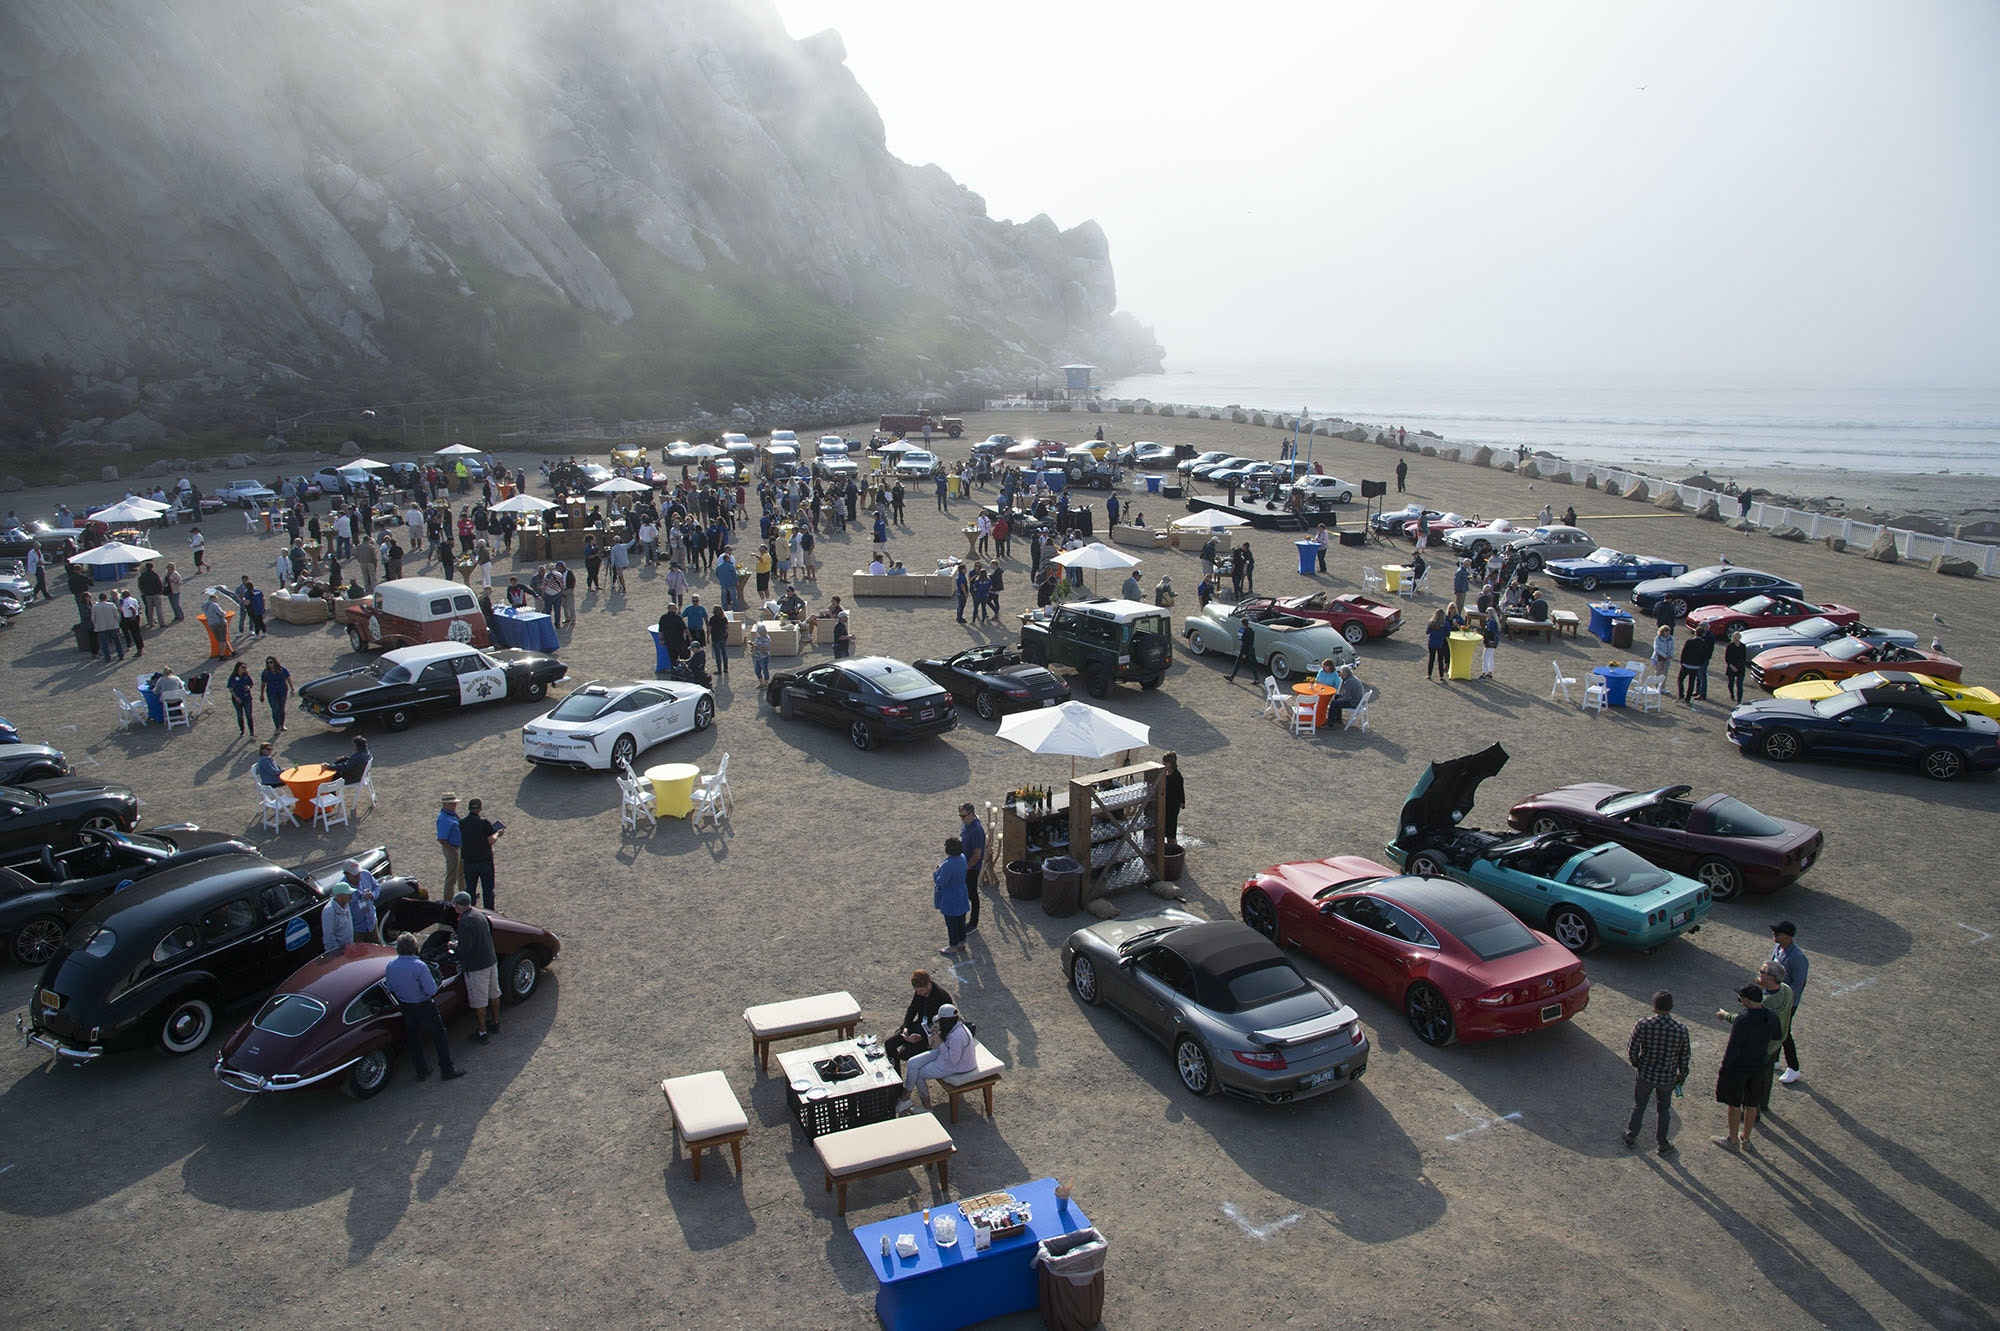 All 80 cars made it to the finish line at Morro Rock.